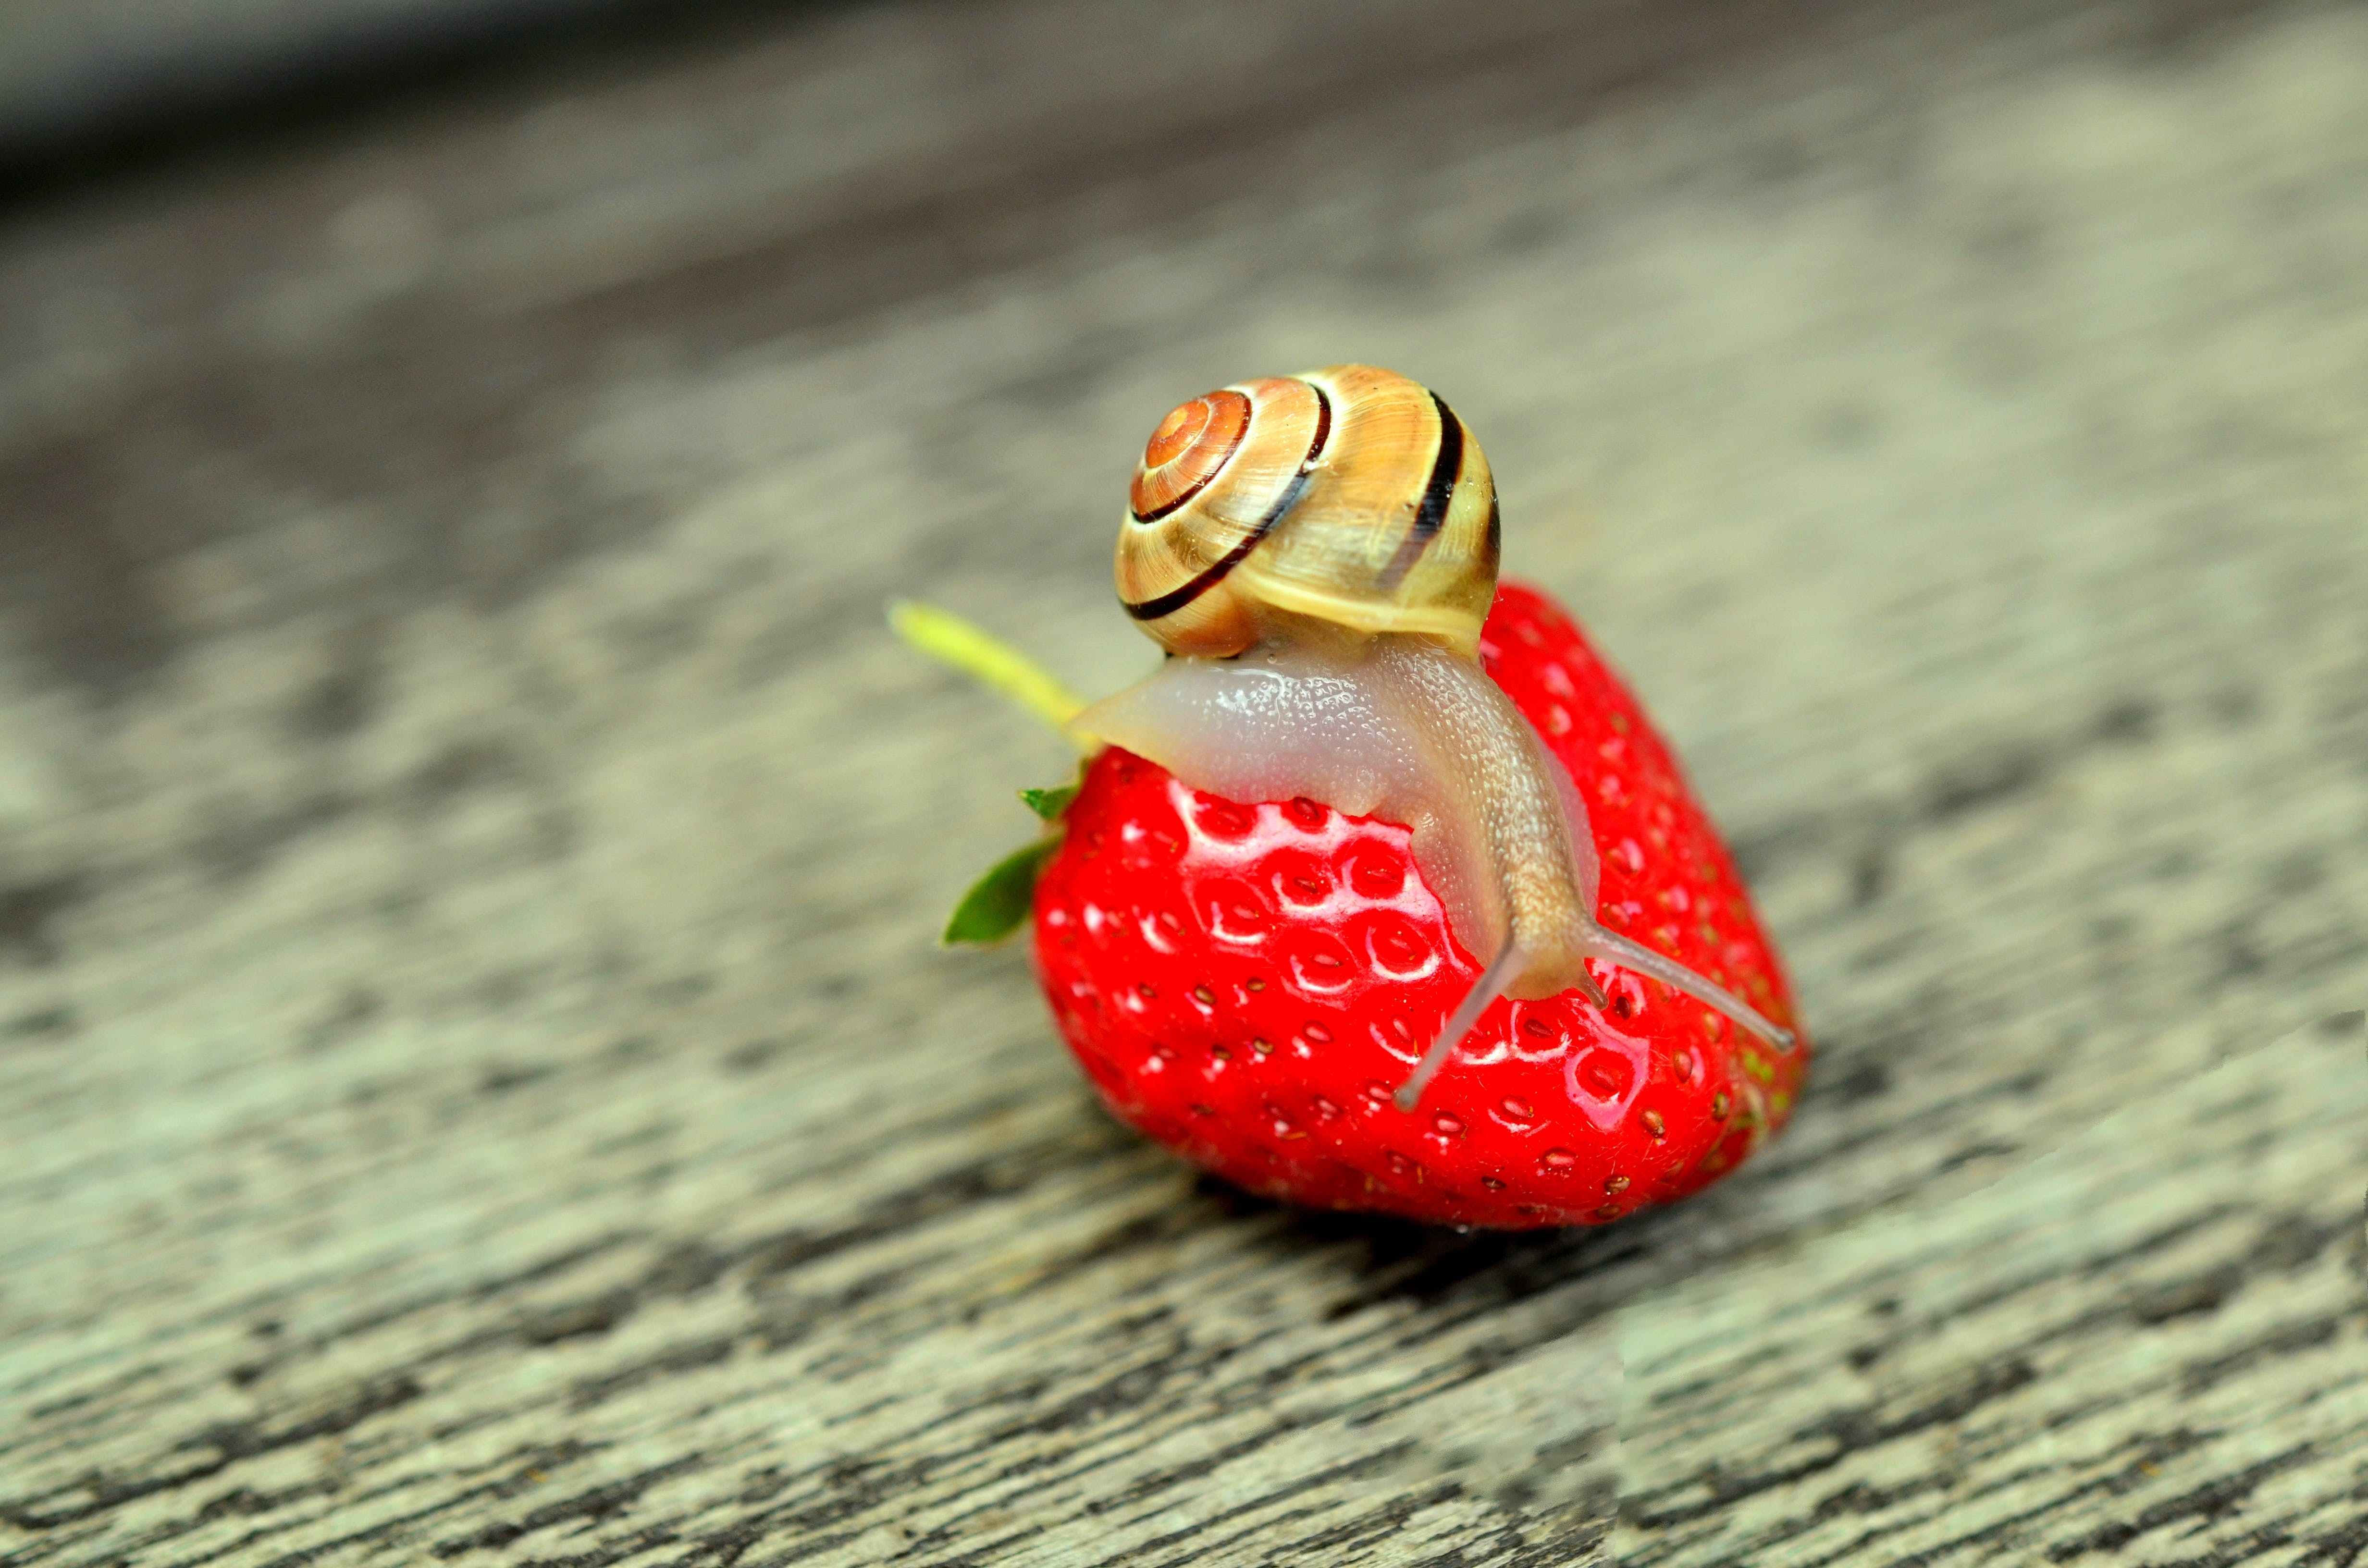 Close Up Photography of Snail Crawling on Strawberry